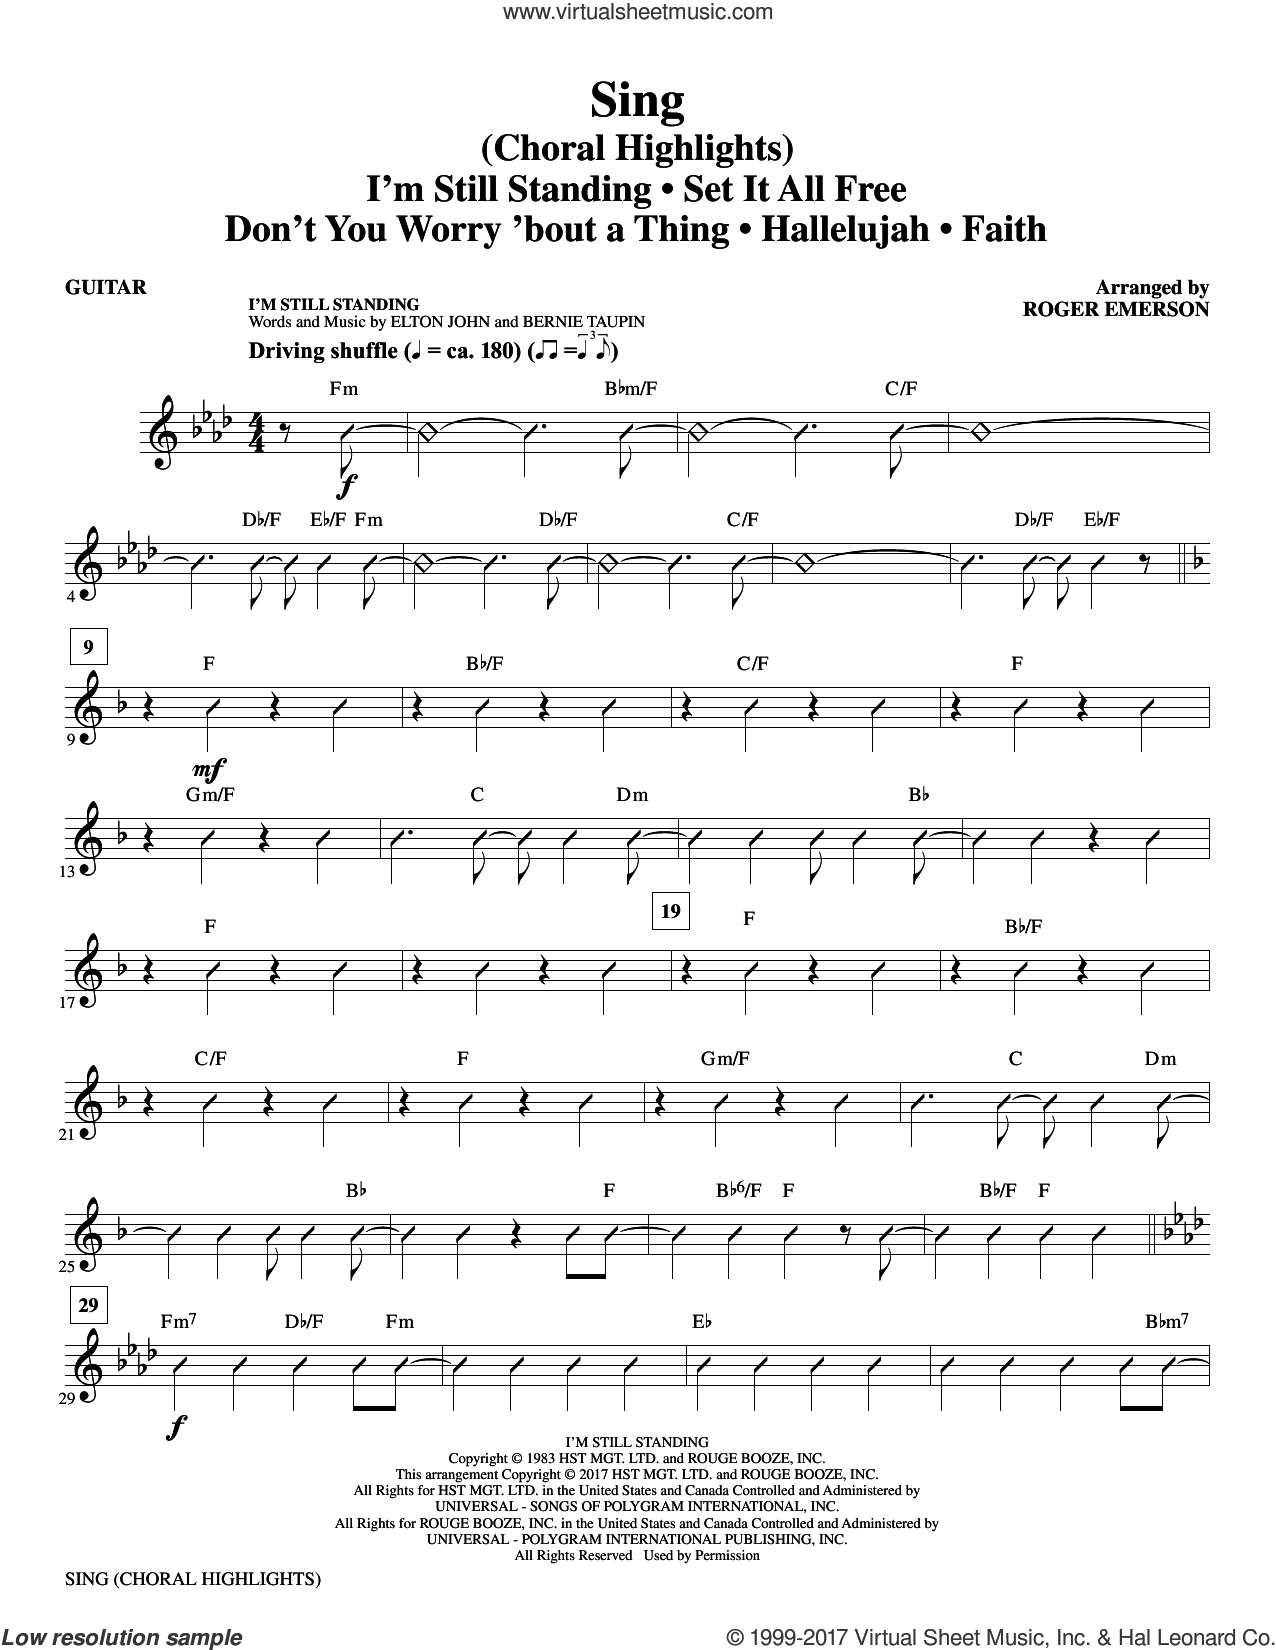 Sing (Choral Highlights) sheet music for orchestra/band (guitar) by Leonard Cohen, Roger Emerson, Justin Timberlake & Matt Morris featuring Charlie Sexton and Lee DeWyze, intermediate. Score Image Preview.